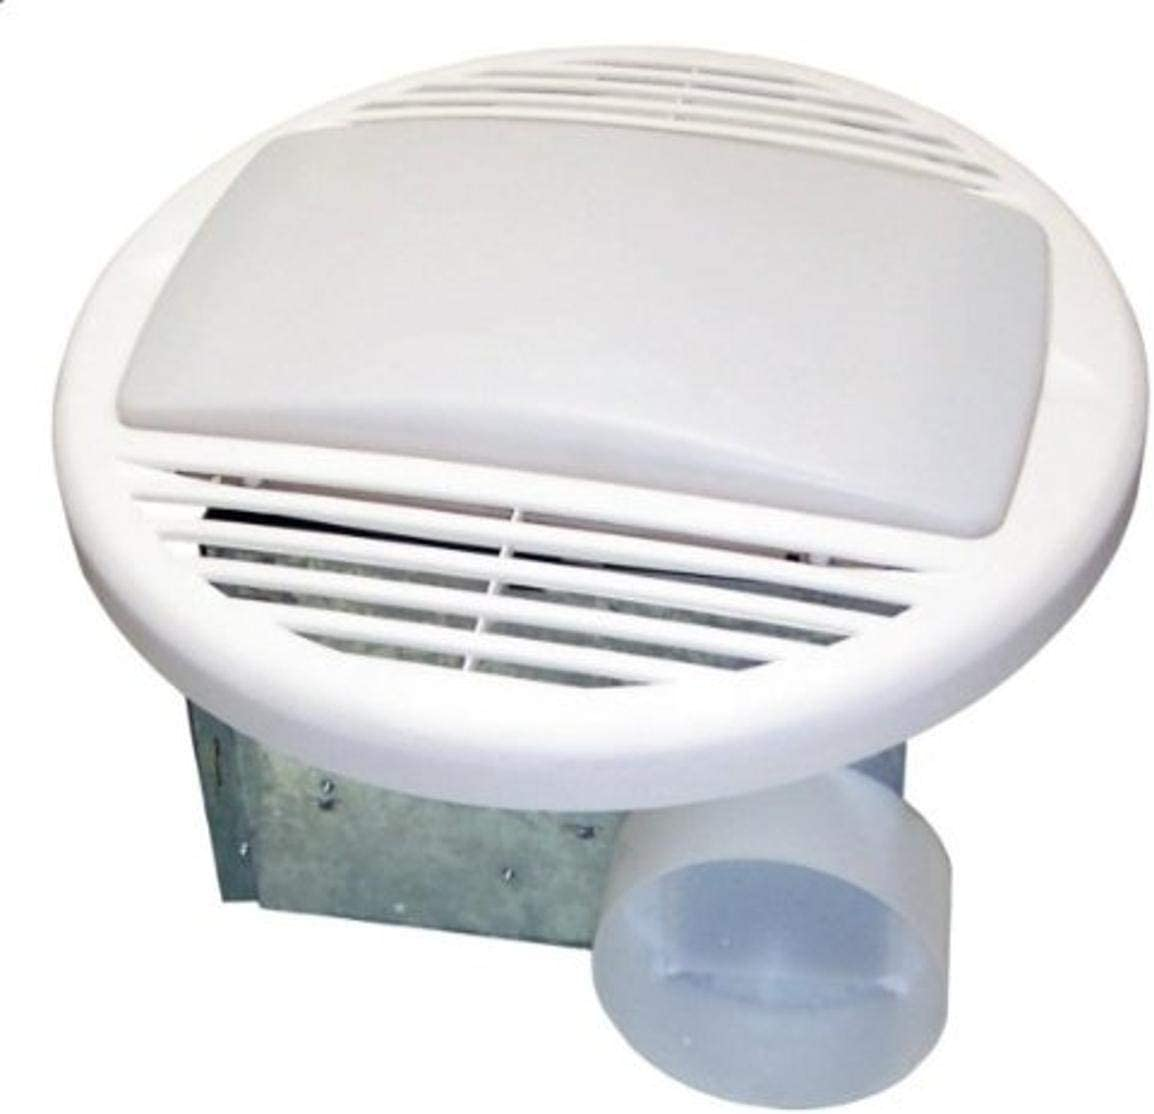 Universal Security Instruments Bathroom Exhaust Fan with Custom-Designed Motor and 100-Watt Lamp, 70 CFM, Model BF-704L